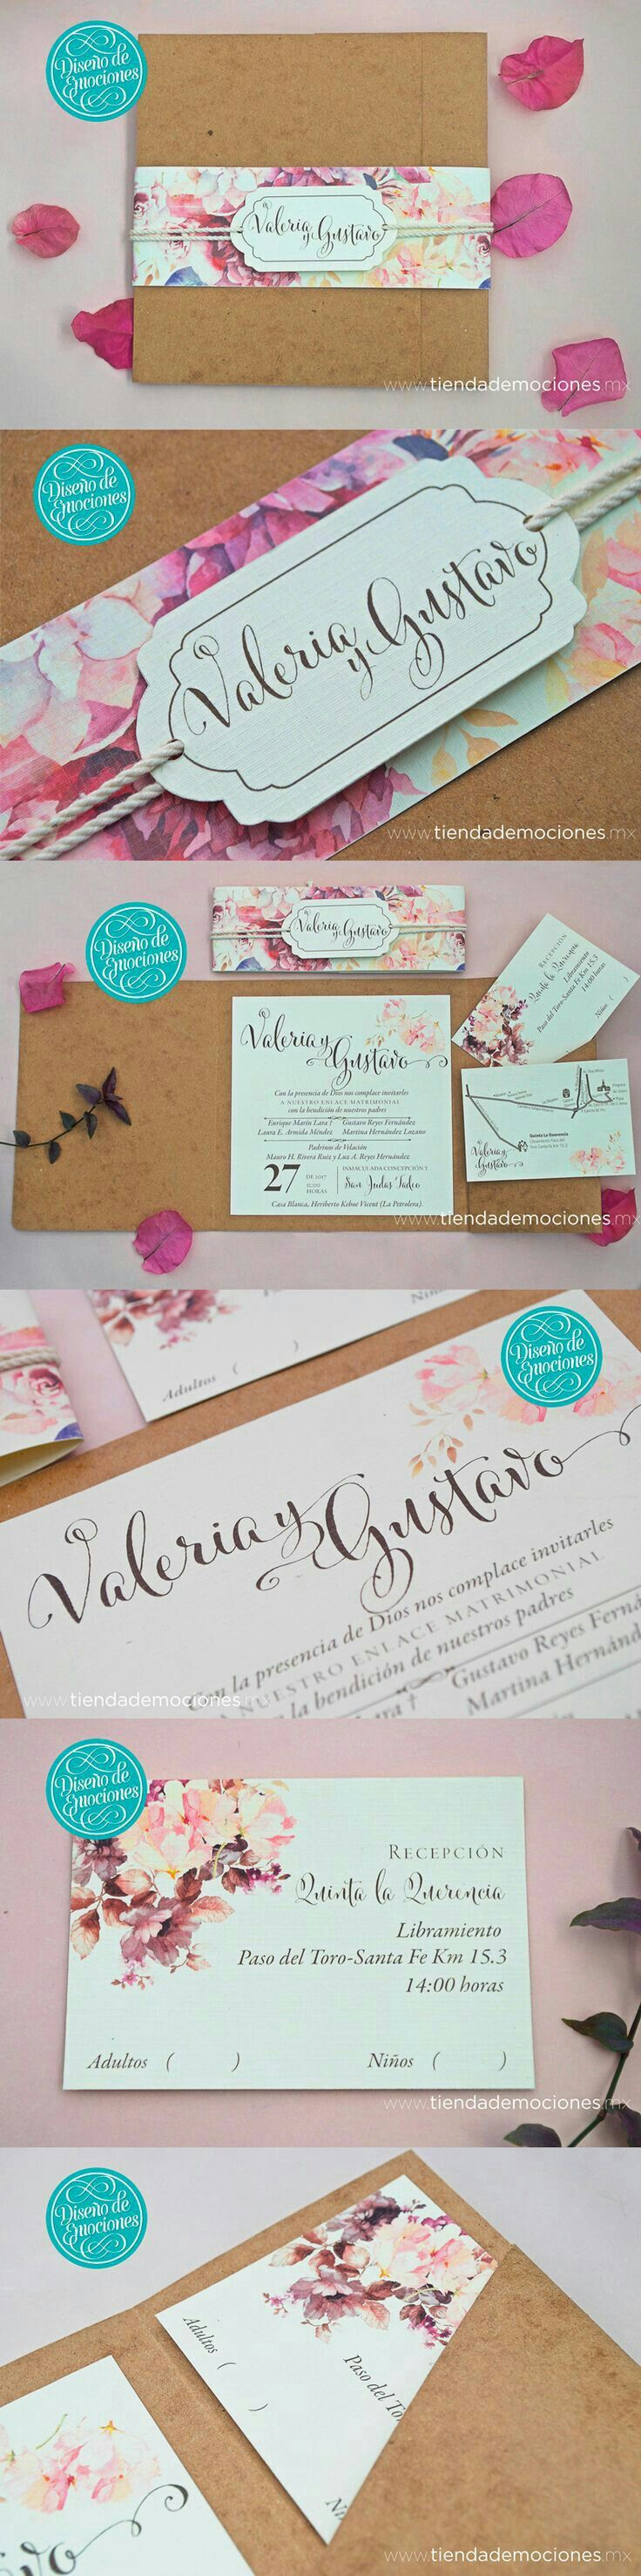 wedding invitation label templates%0A Love the mint background and floral but possibly needs to be more deep  blush  rose and lavender colours